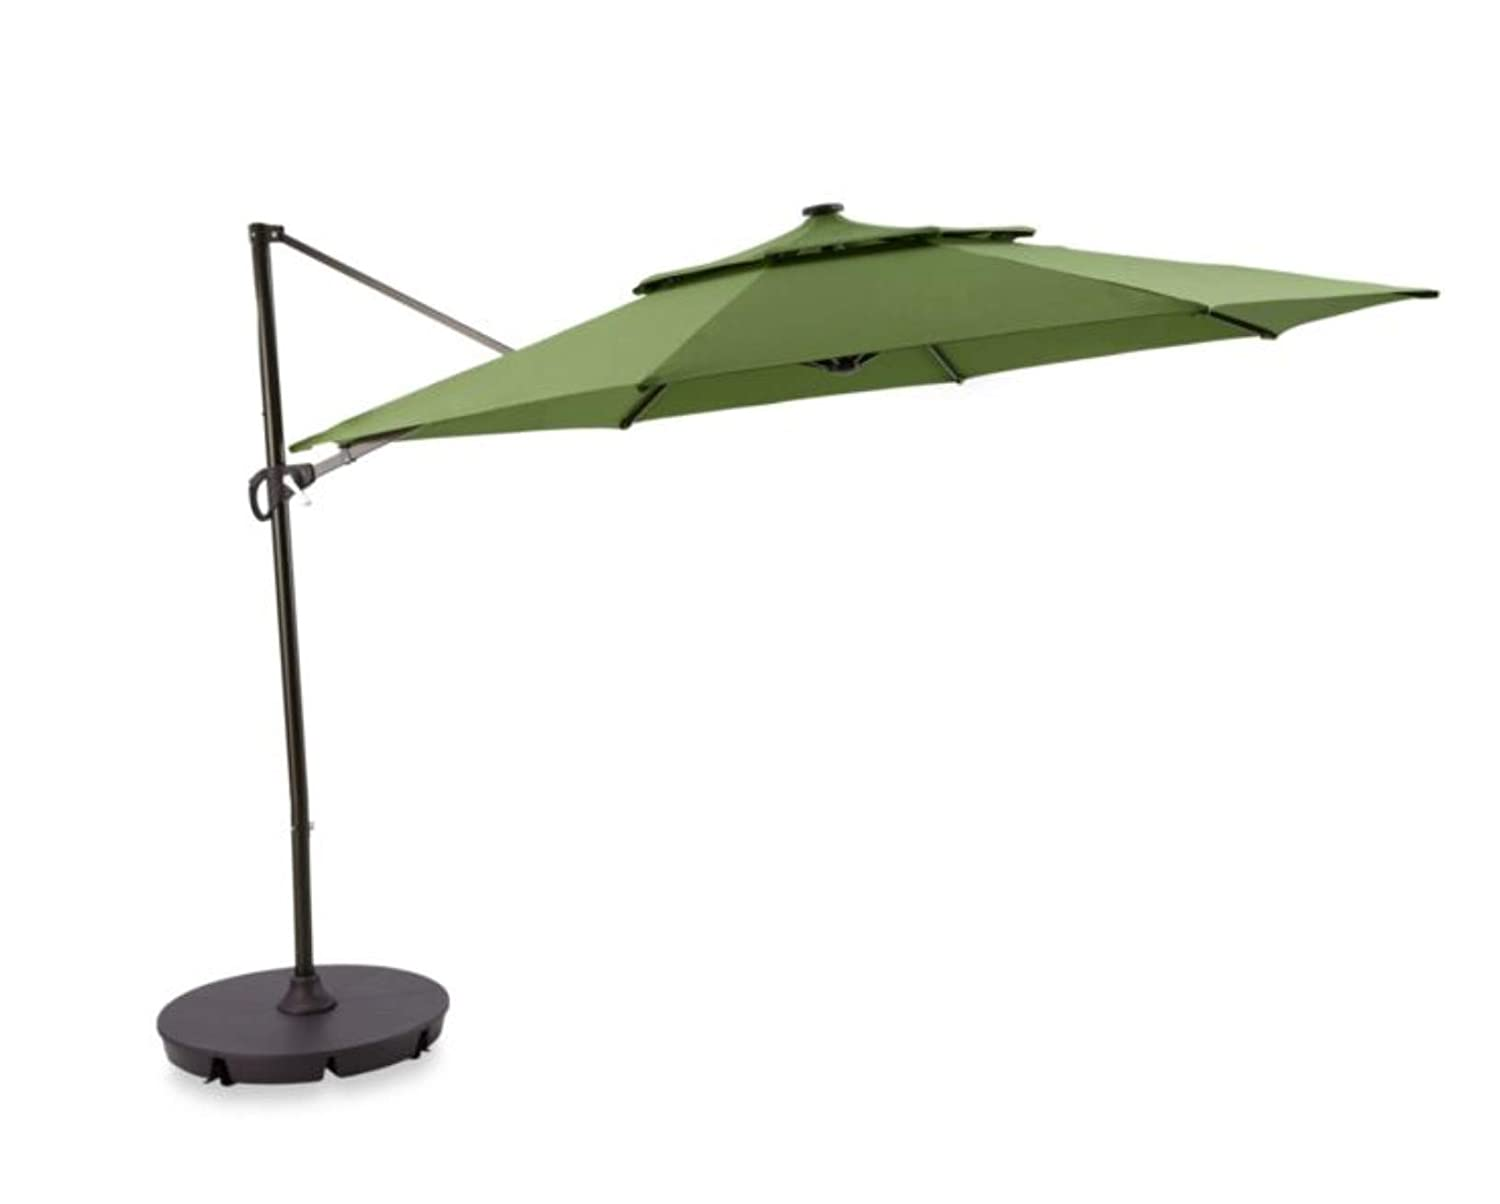 Destination Summer Outdoor Patio Cantilever Umbrella 11 Foot Round Canopy  with Solar Powered Lights Includes Base and Storage Cover (Green)